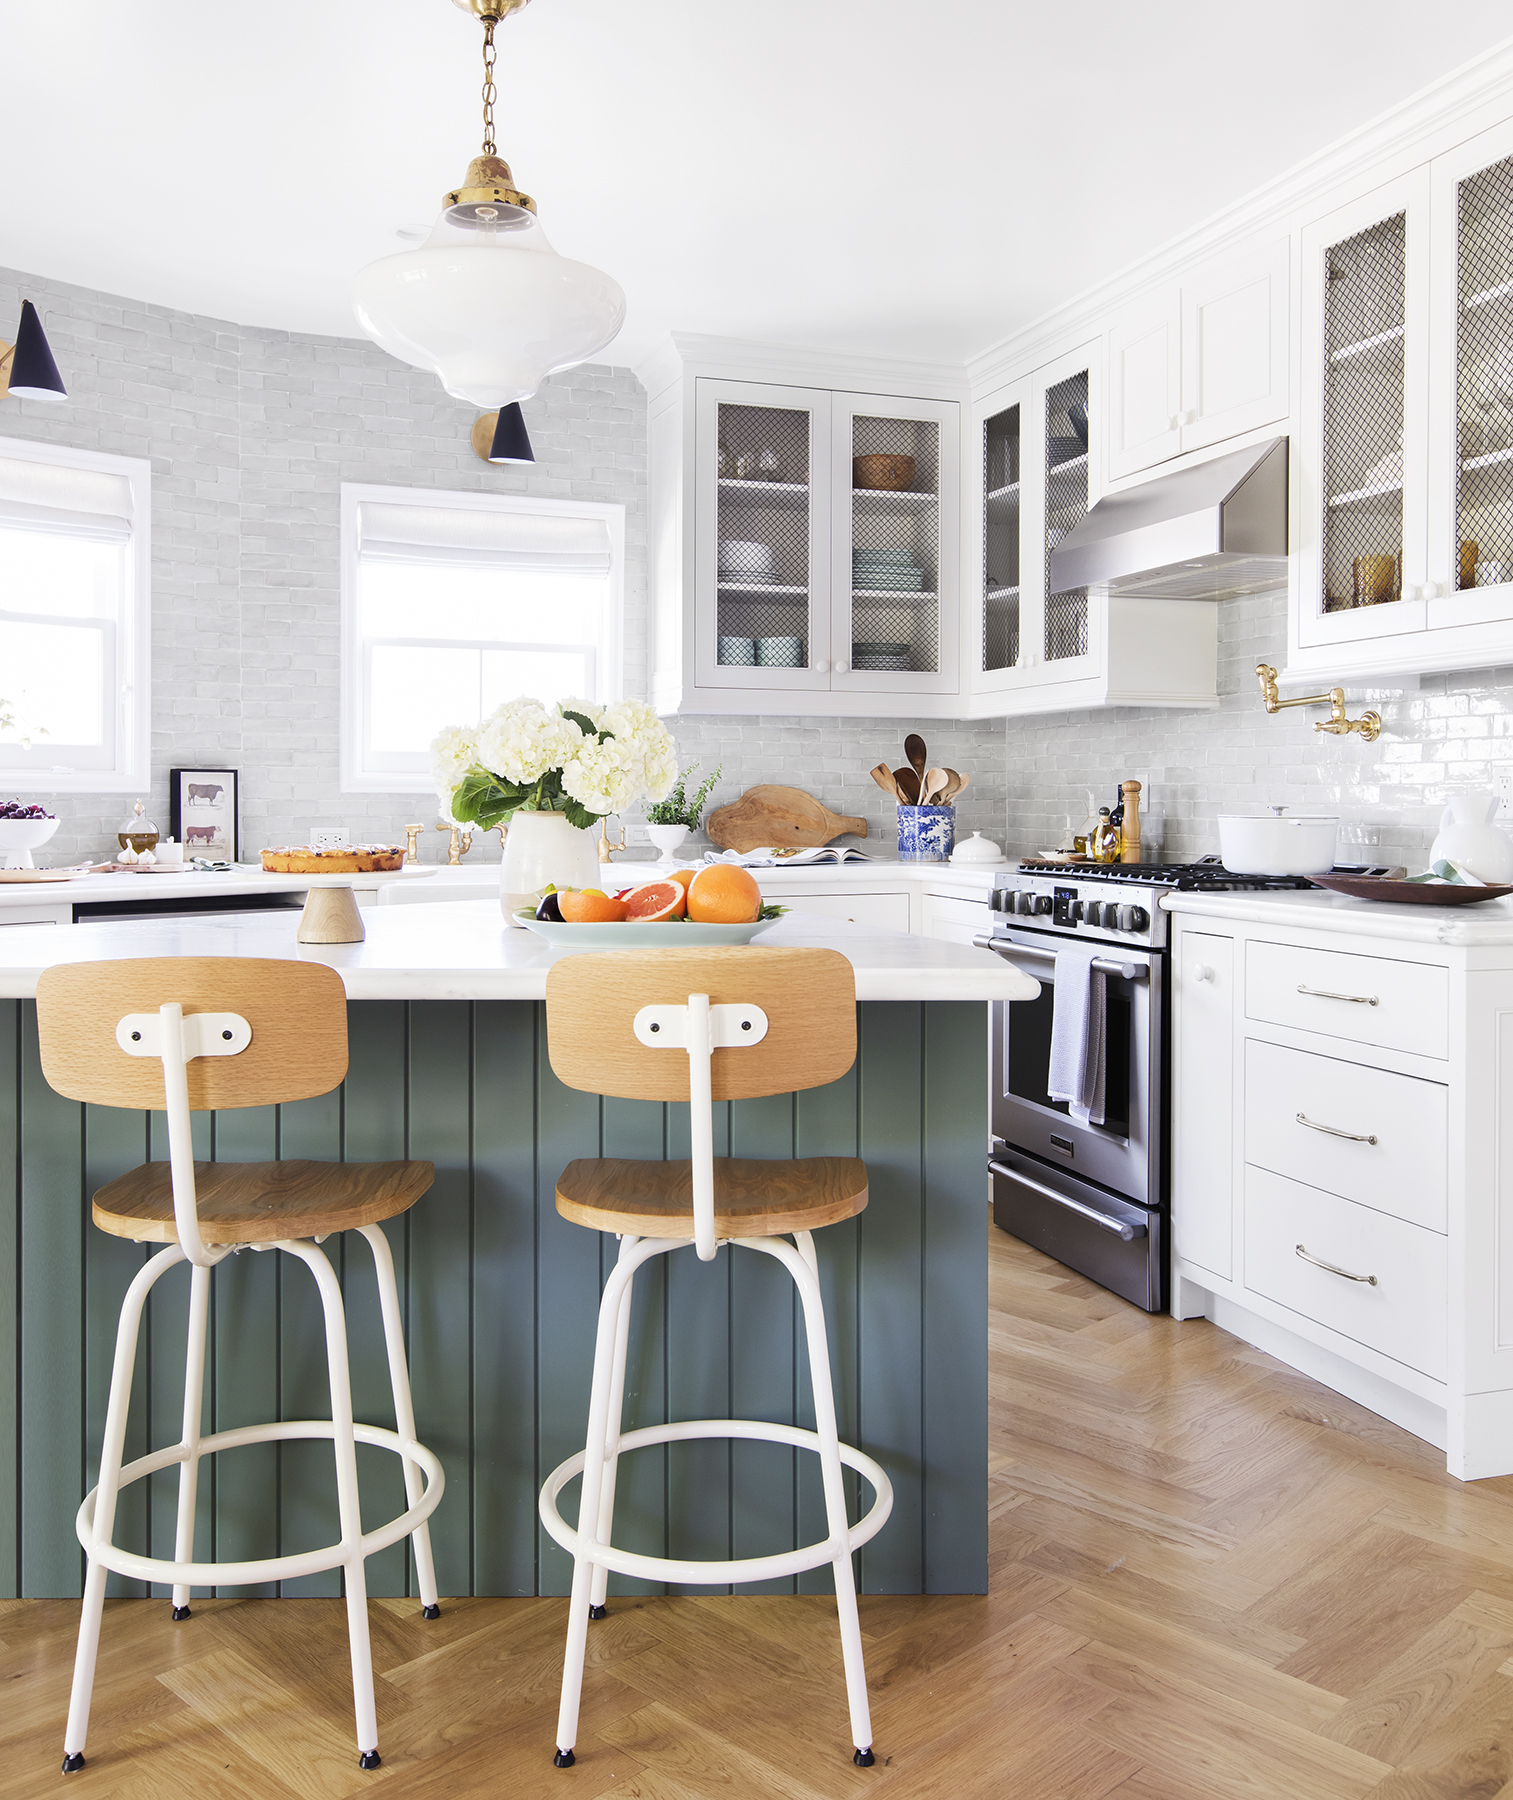 Kitchen Peninsula Cooktop: 6 Steps To Painting A Room